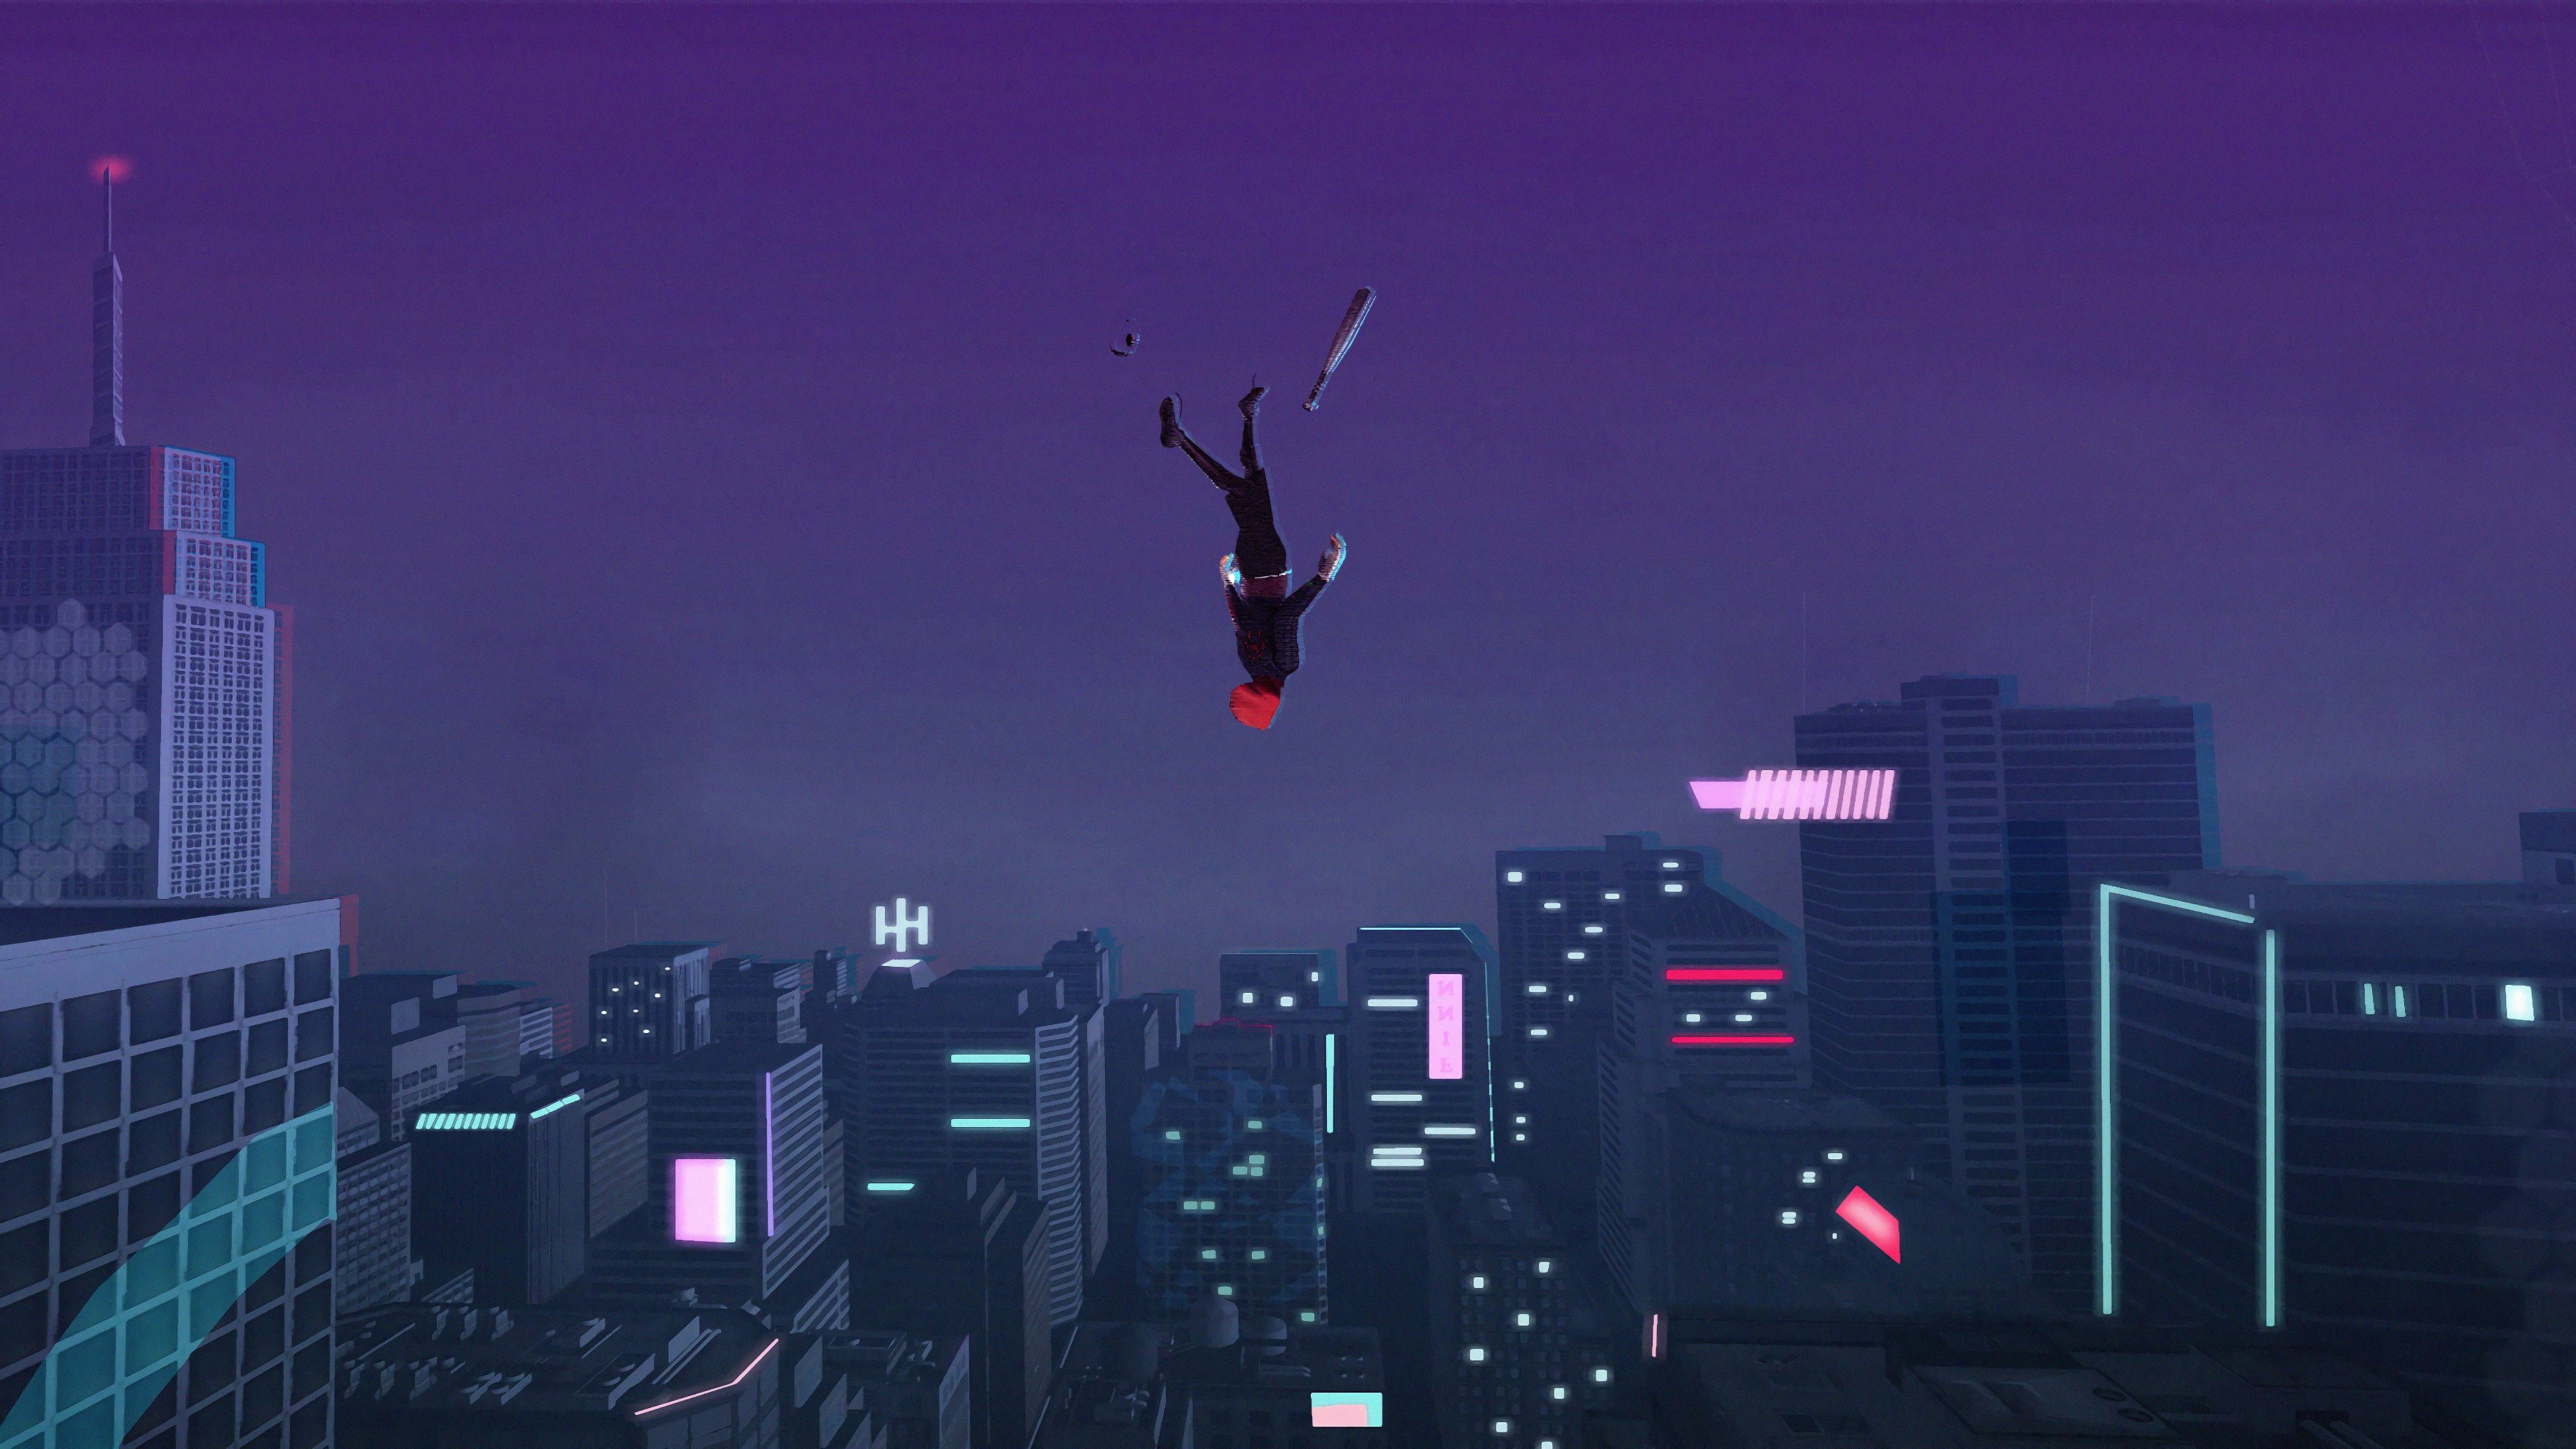 Miles Morales Leap Of Faith Spider Man Into The Spider Verse 4k 28369 Macbook Wallpaper Nature Iphone Wallpaper Iphone Wallpaper Inspirational